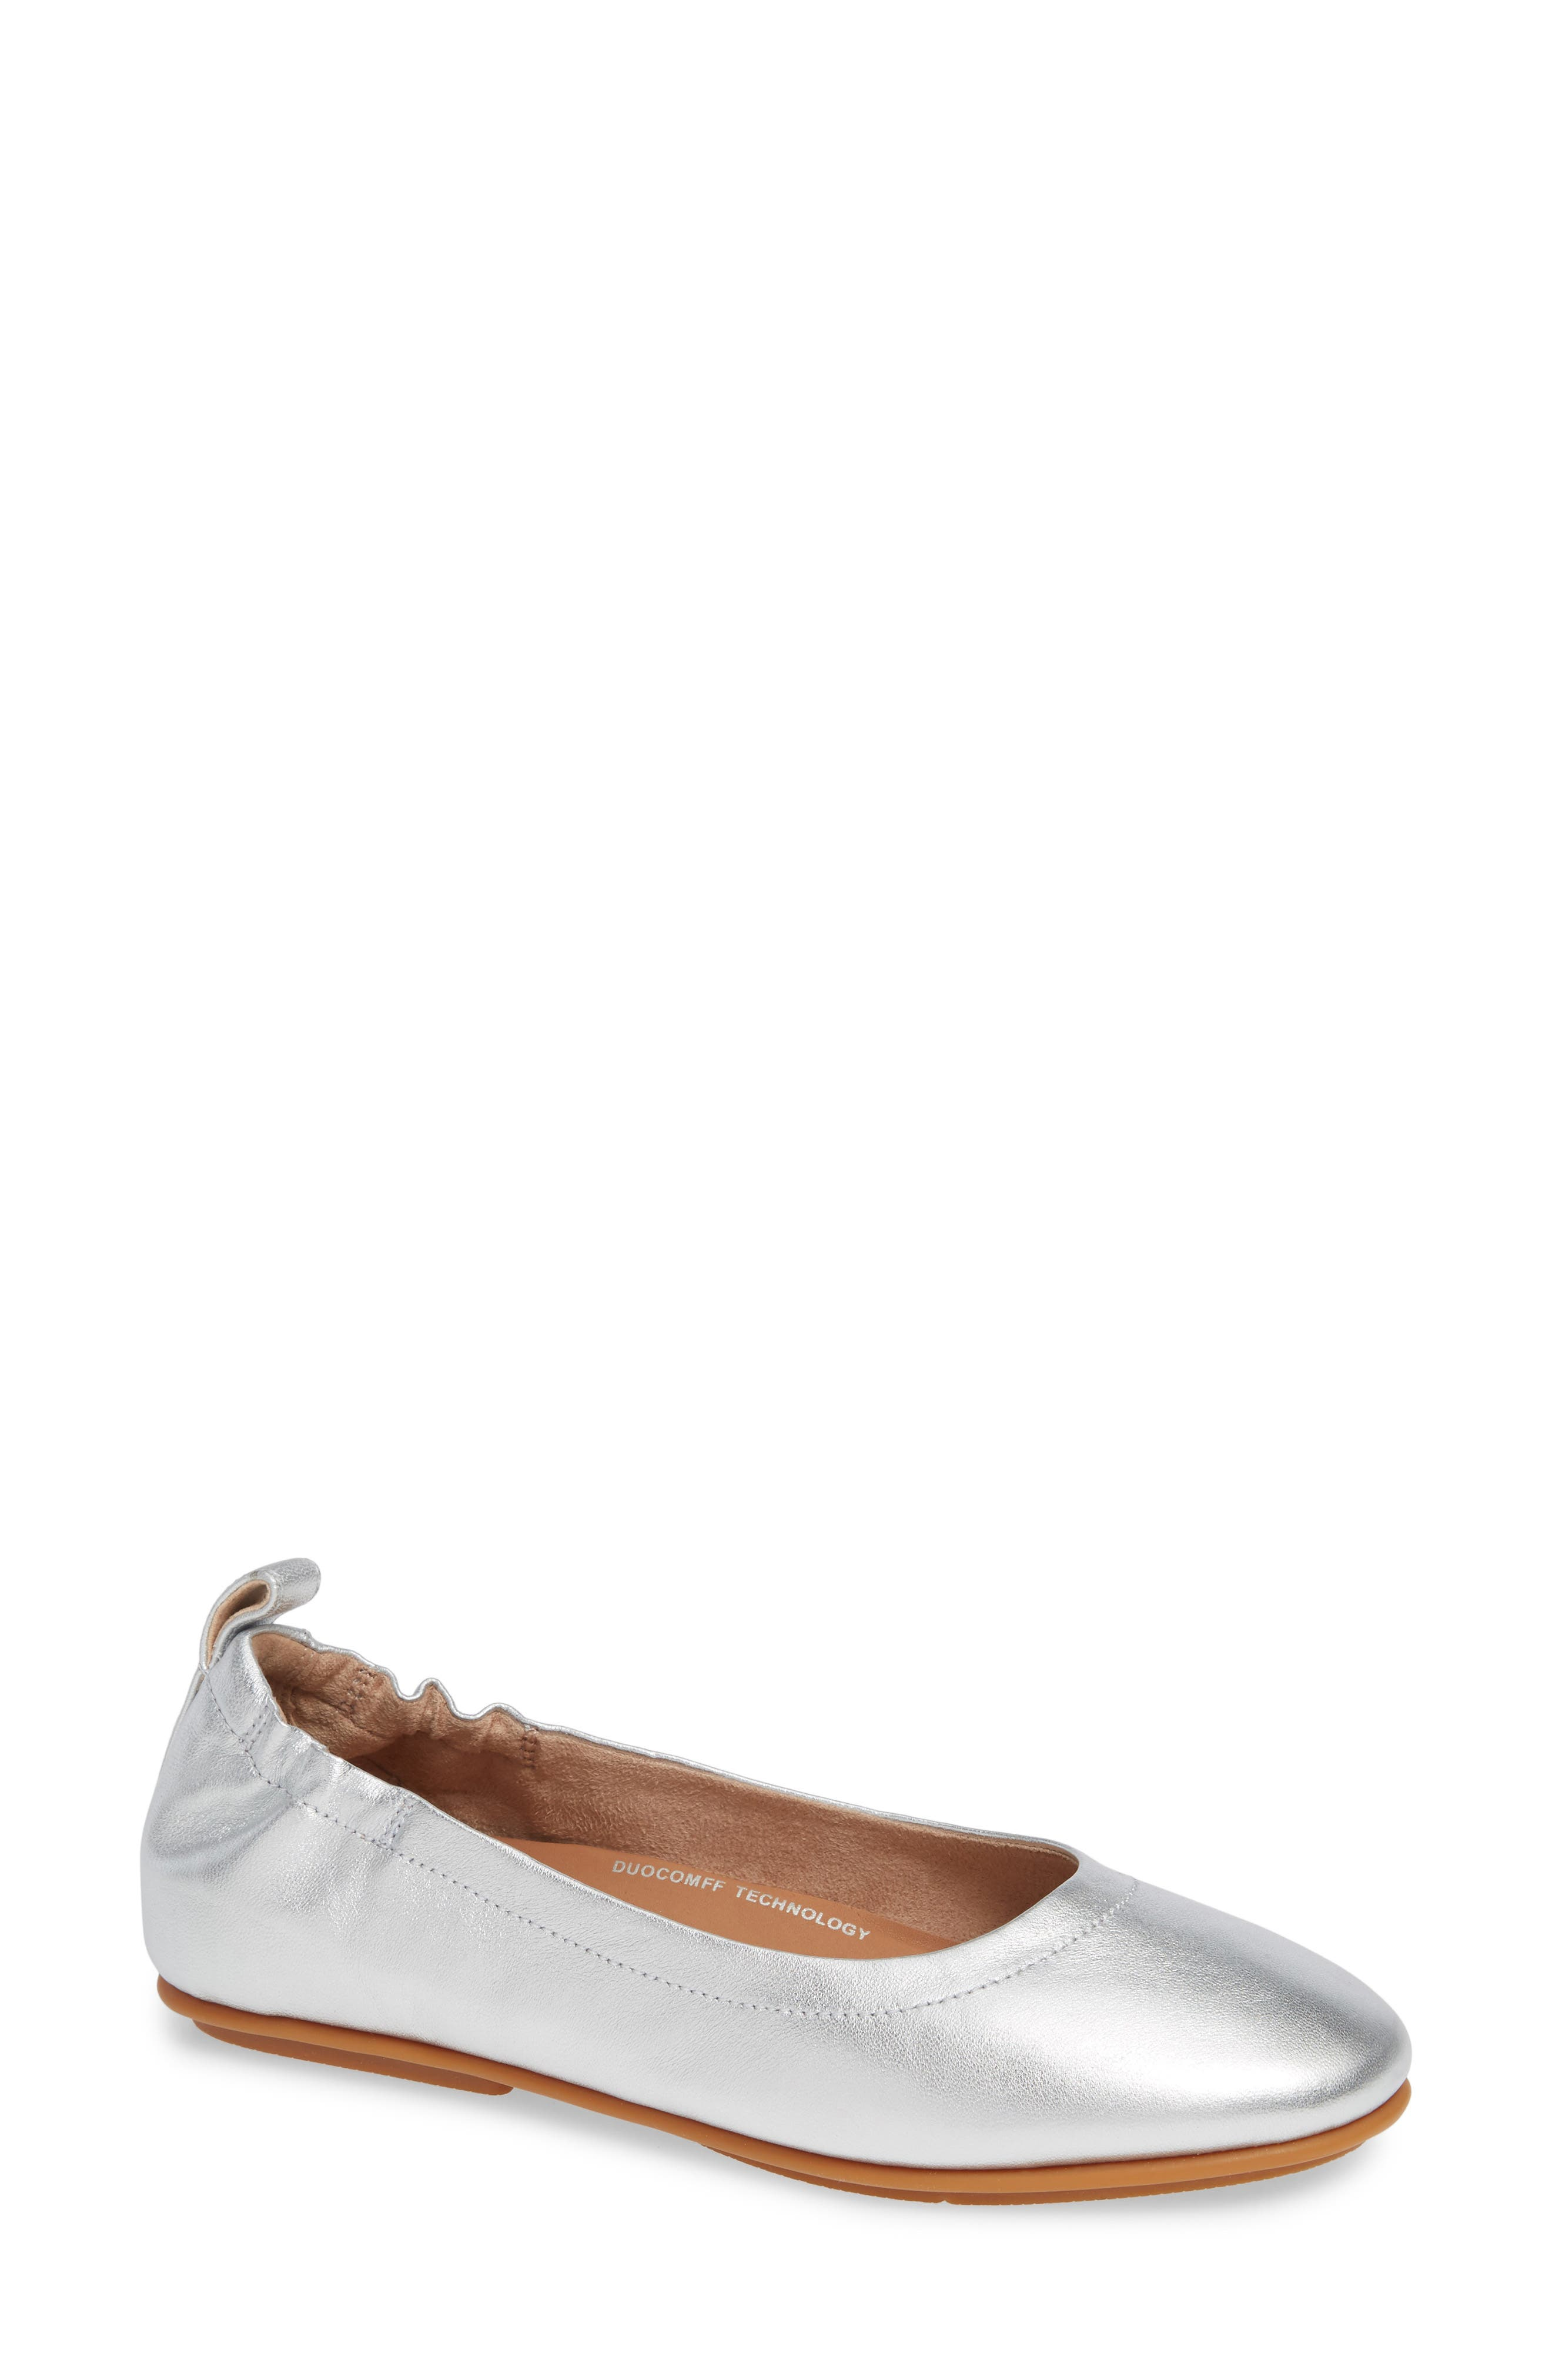 FITFLOP Allegro Ballet Flat in Silver